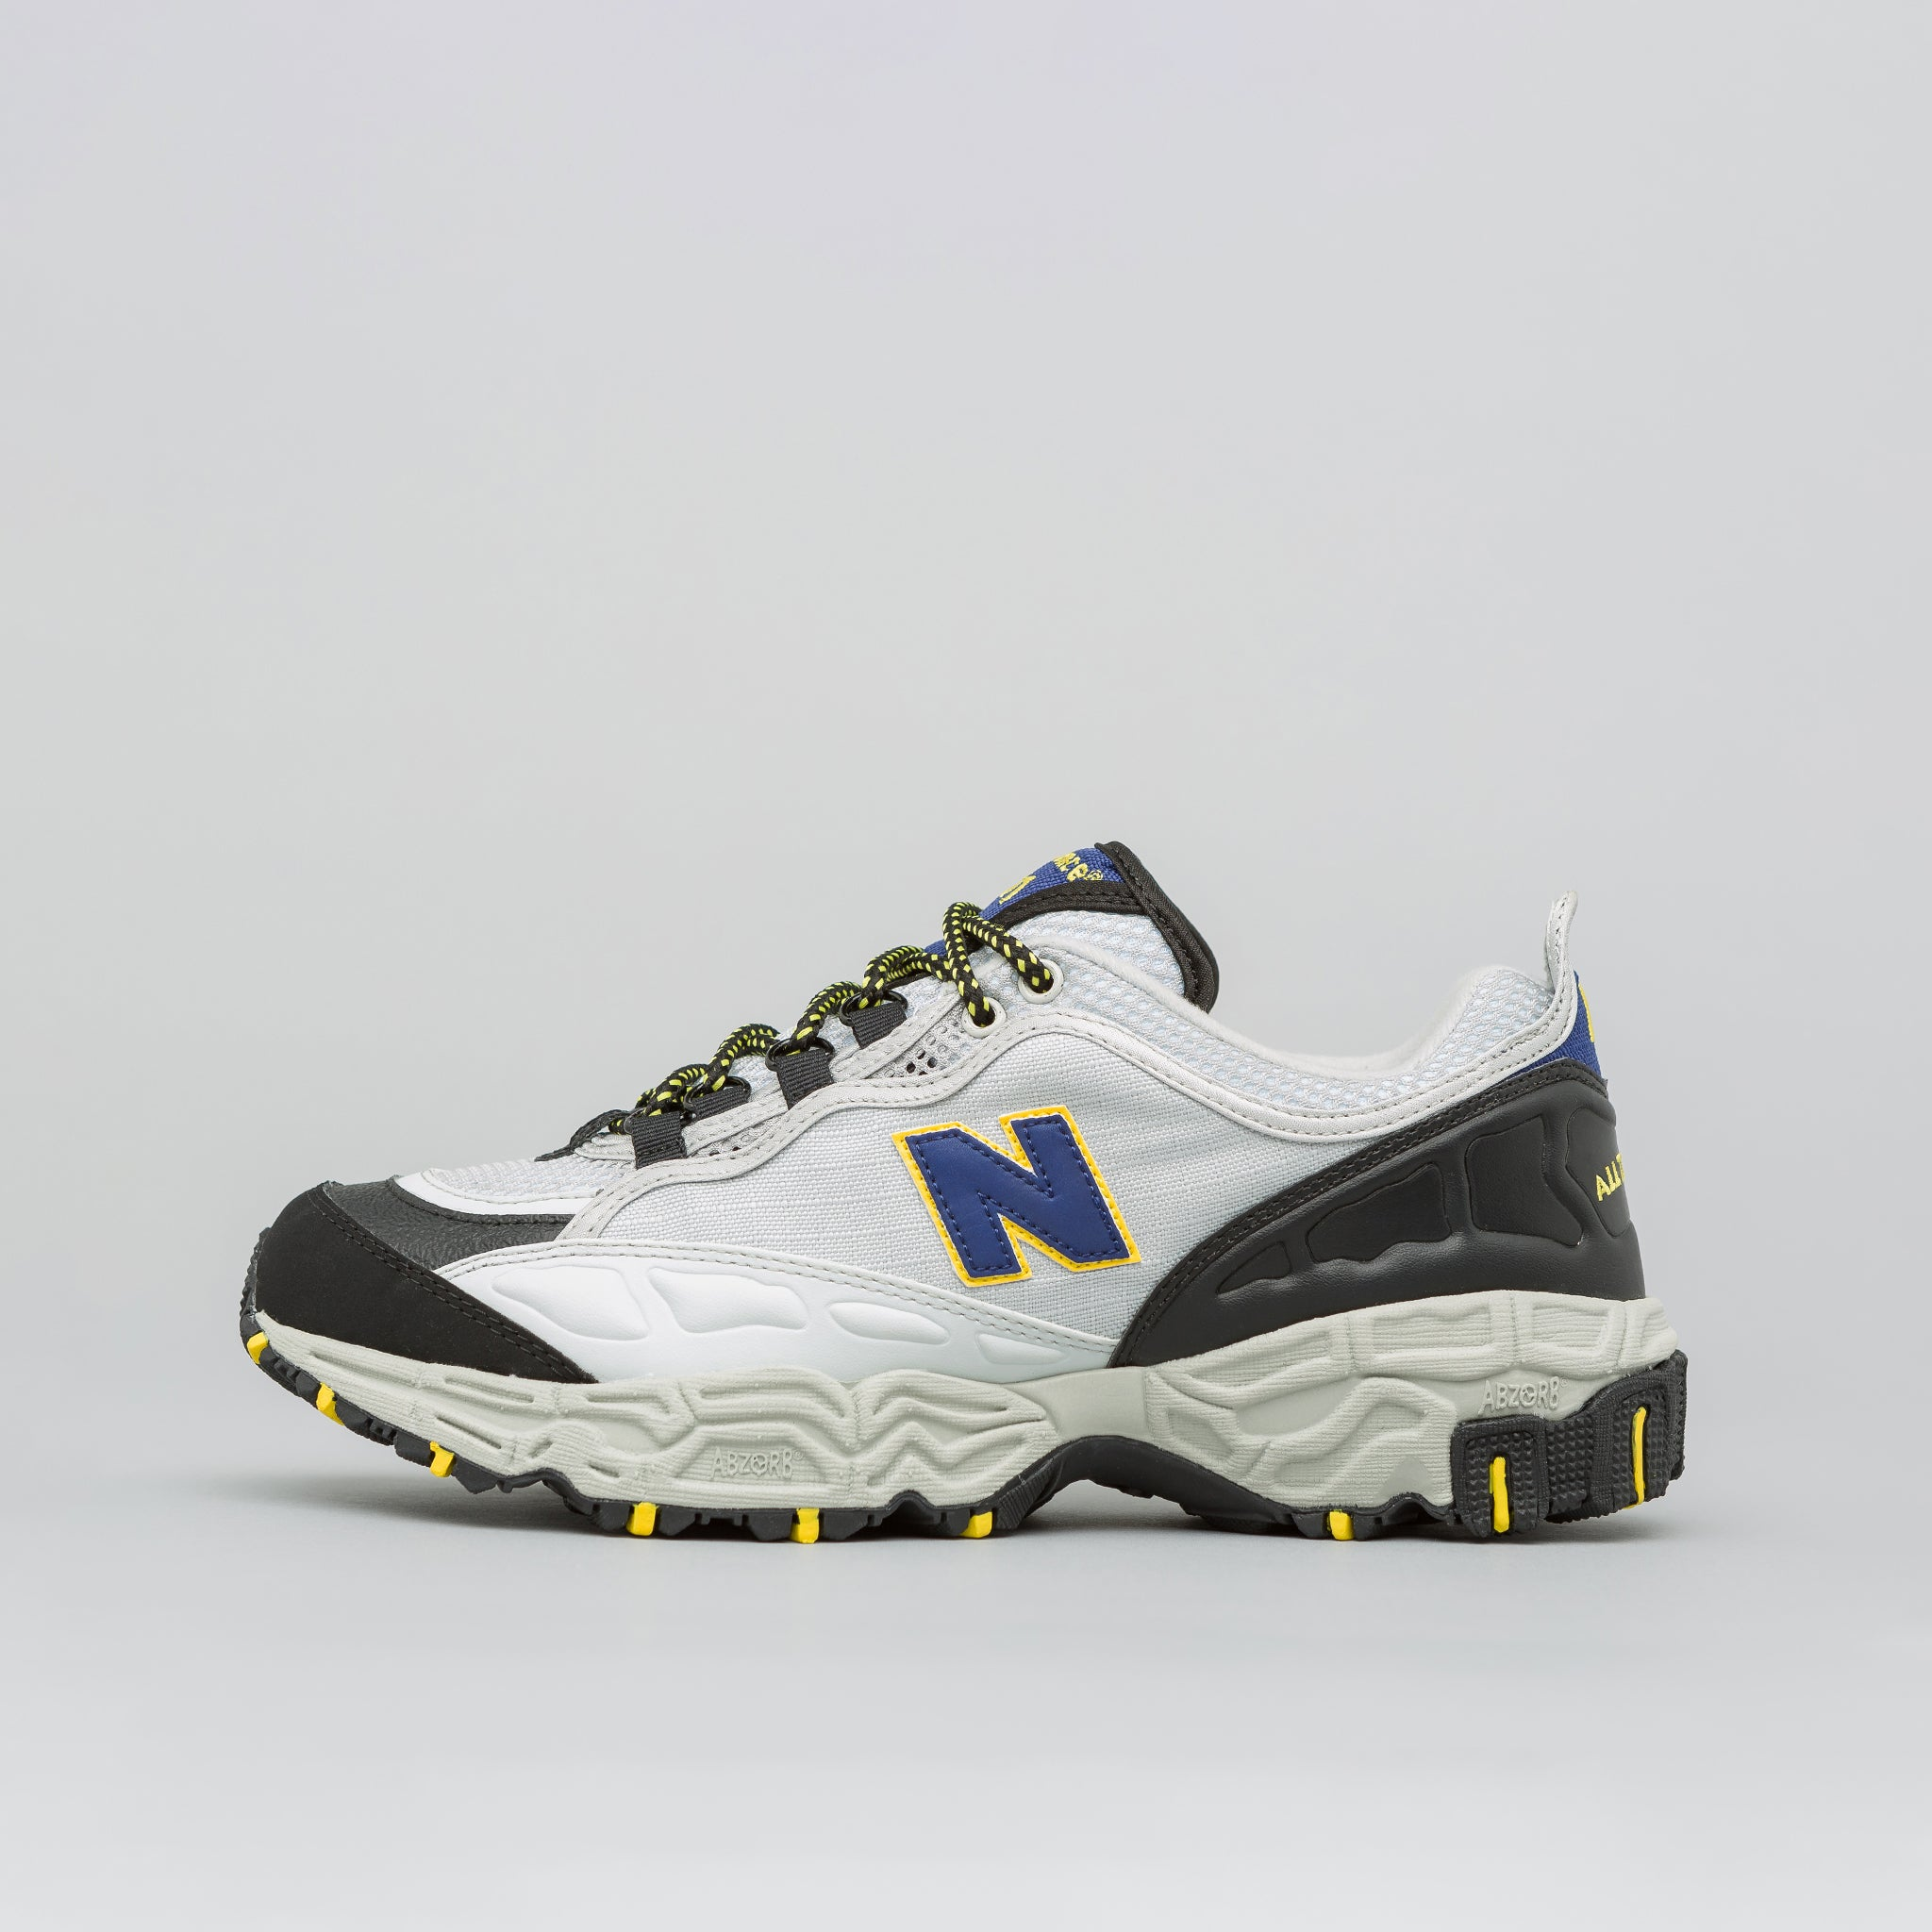 252c4bcc New Balance M801AT in Grey/Blue/Yellow   Notre